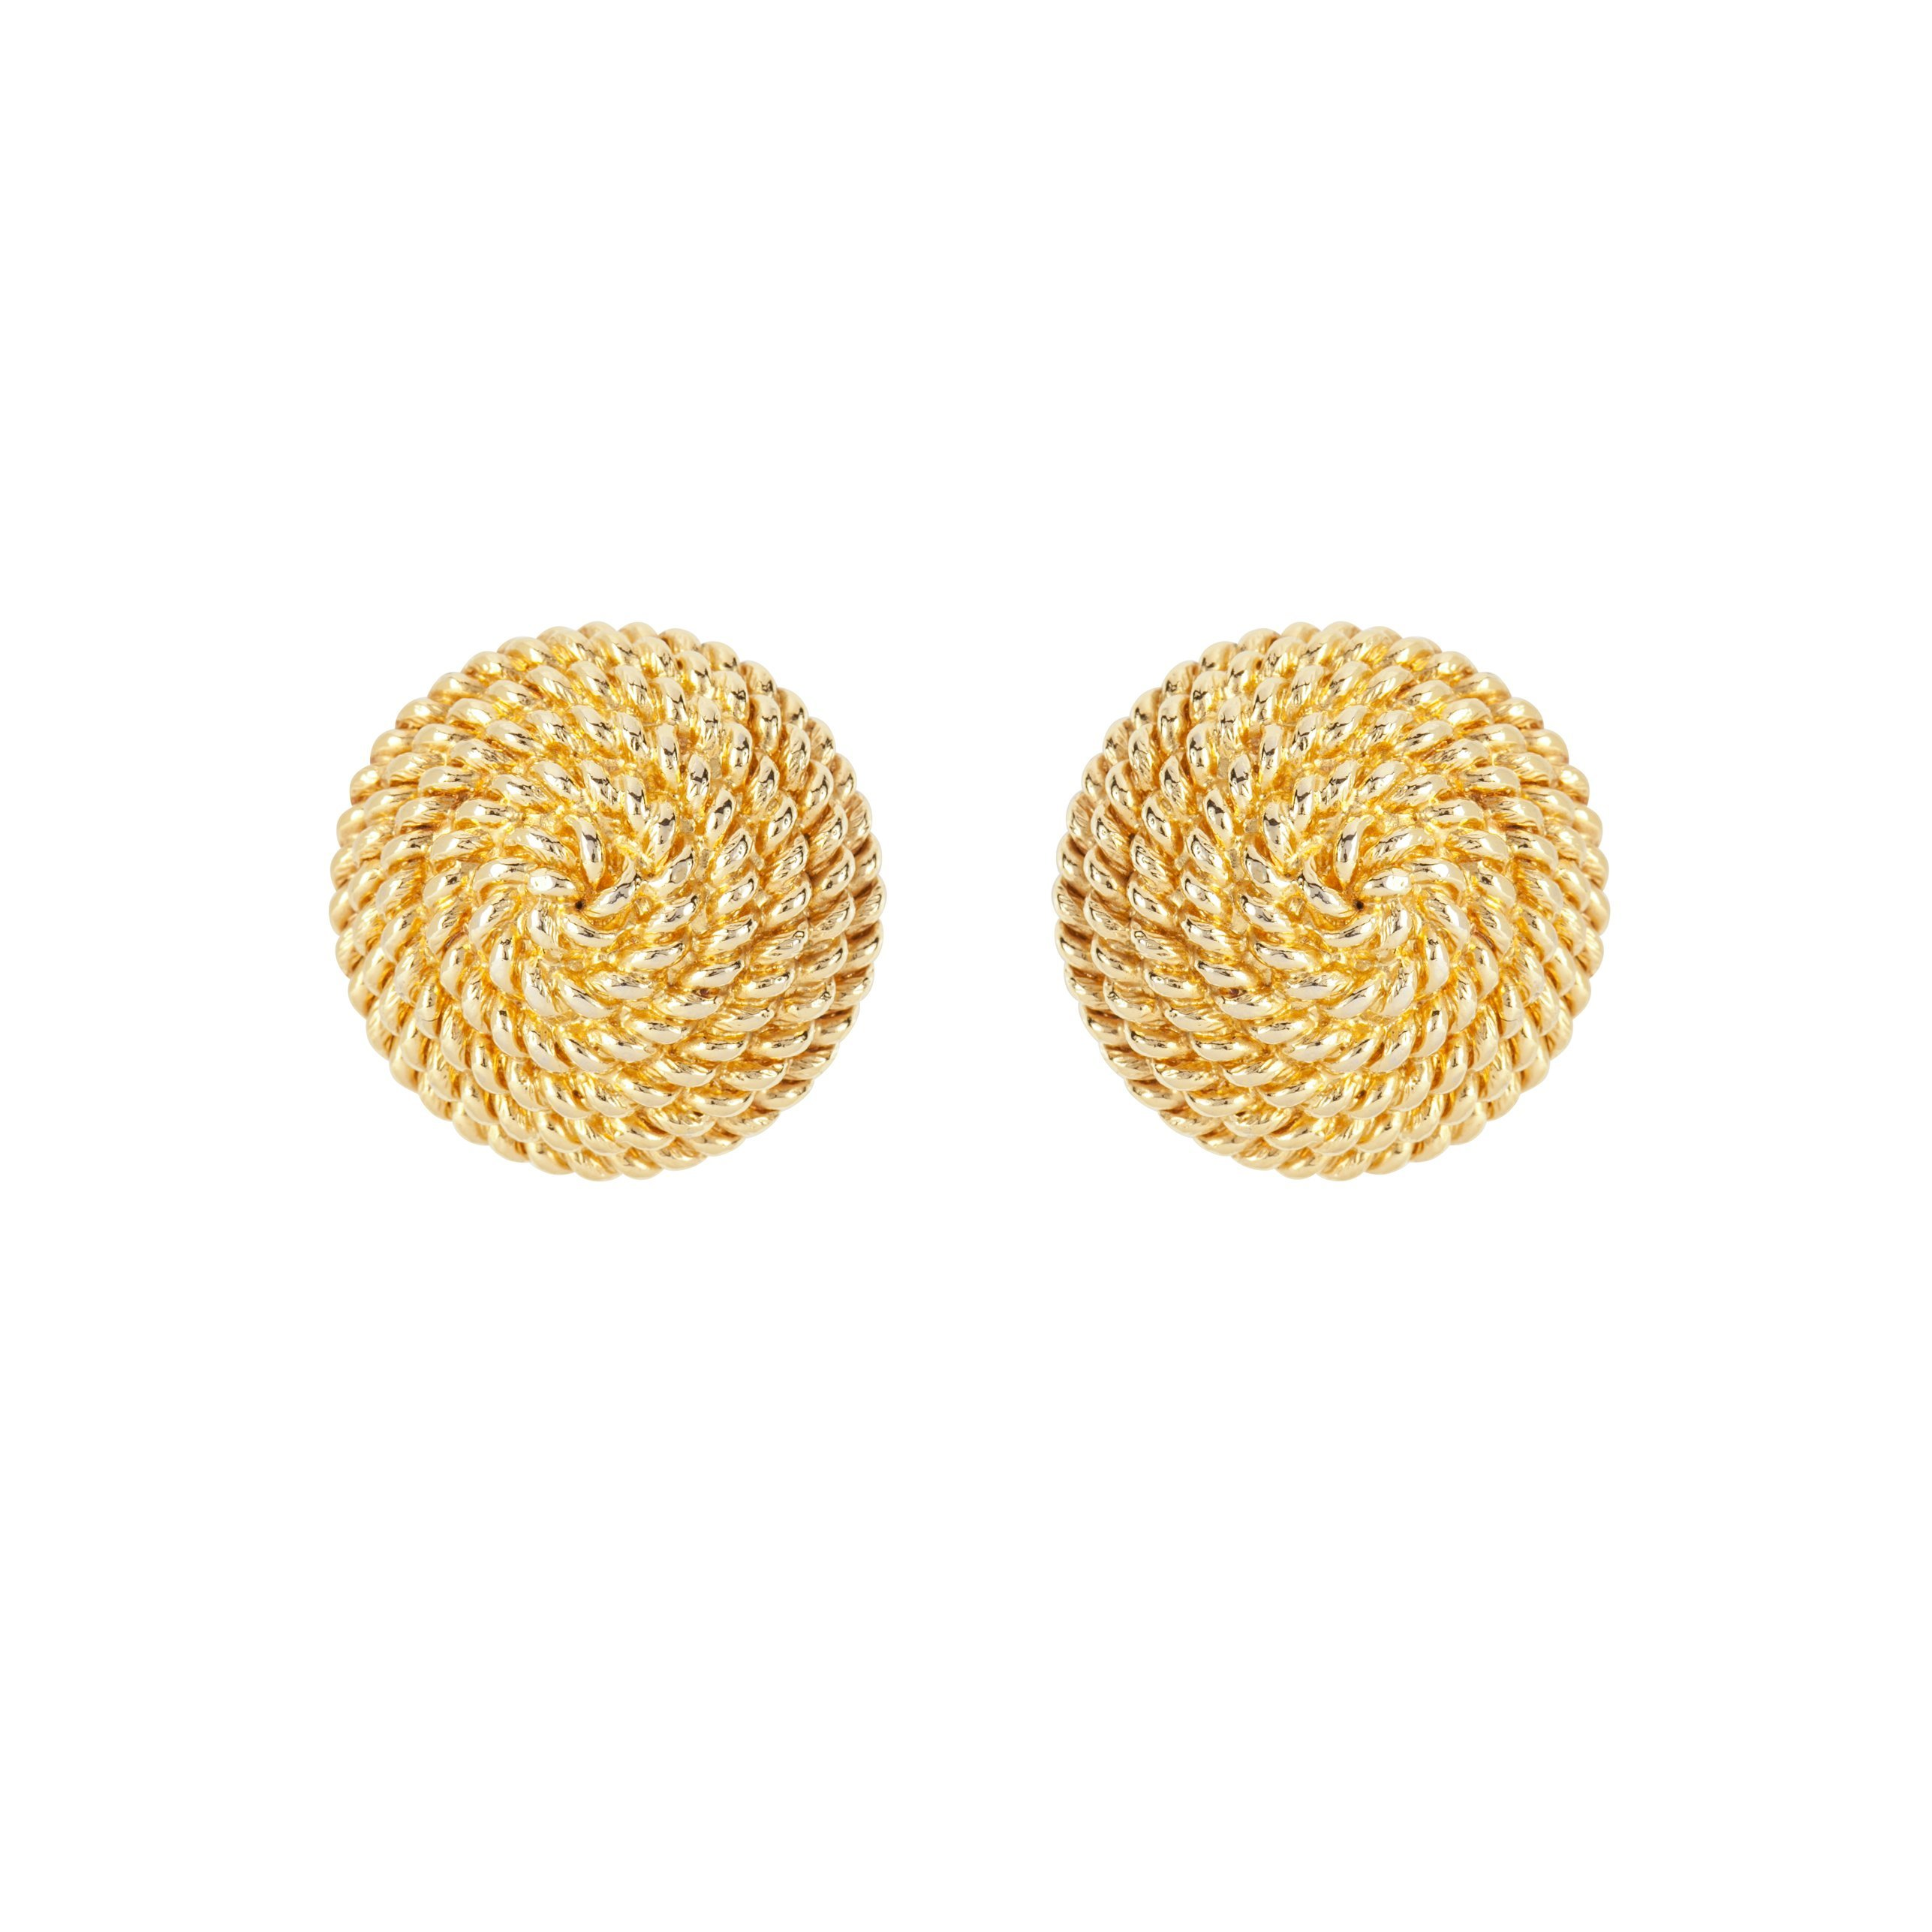 1980S VINTAGE MONET DAINTY WOVEN ROUND EARRINGS